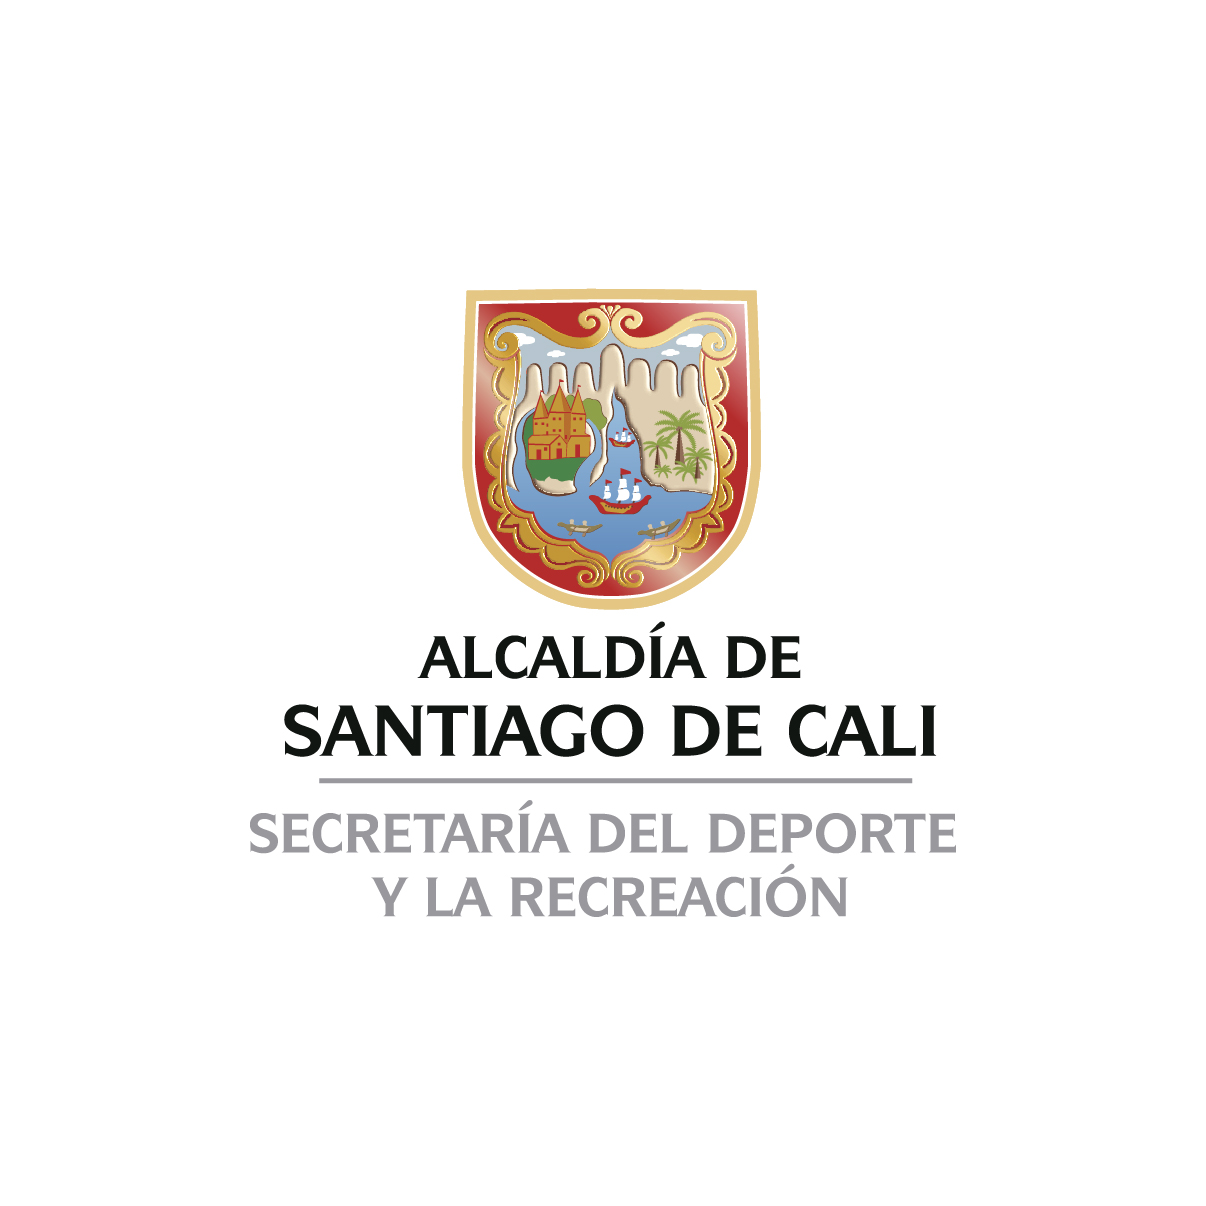 secretaria-del-deporte-y-la-recreacion